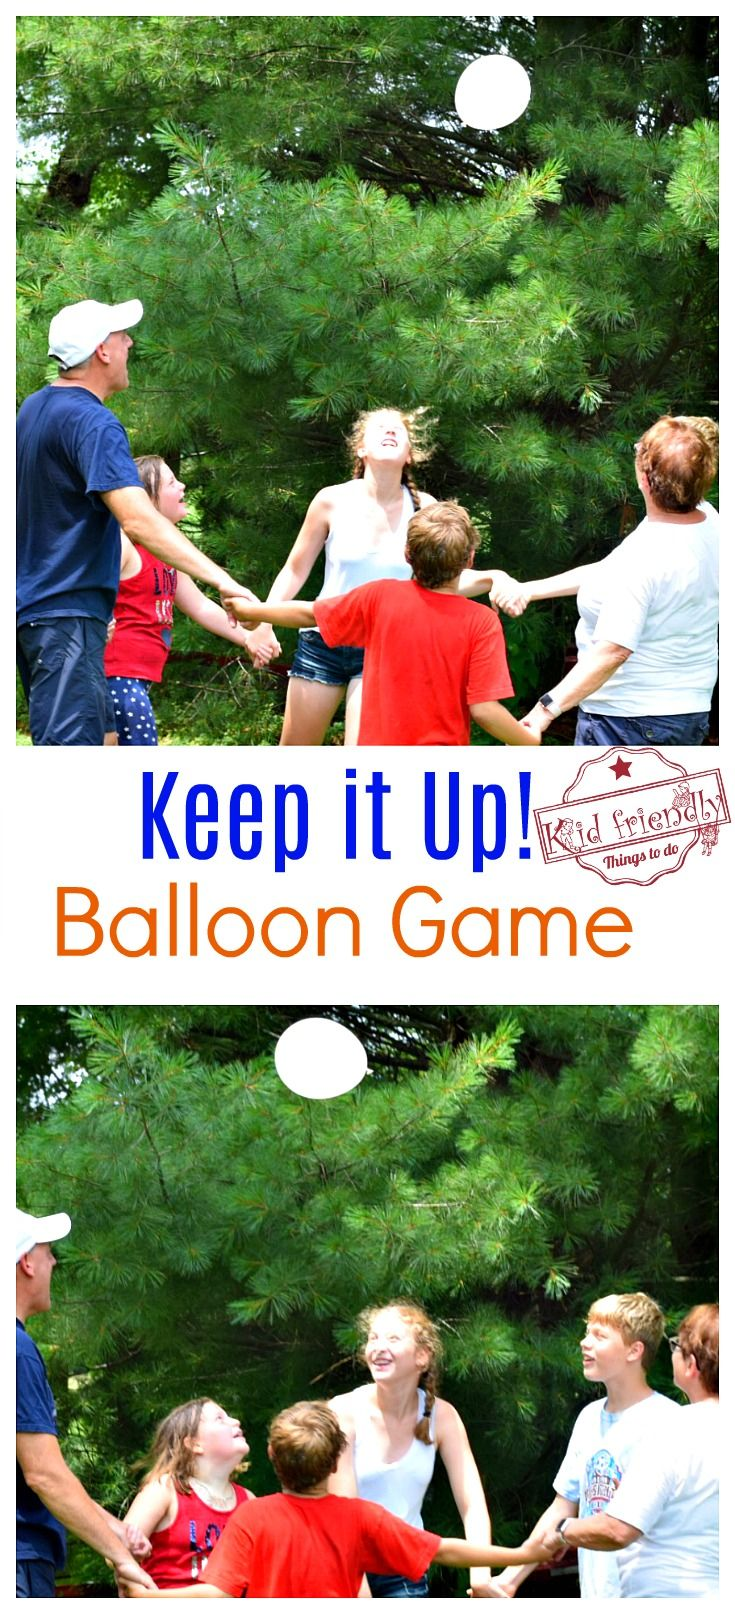 Just Keep it Up – A Fun Balloon Game for Kids, Teens, and Adults to Play